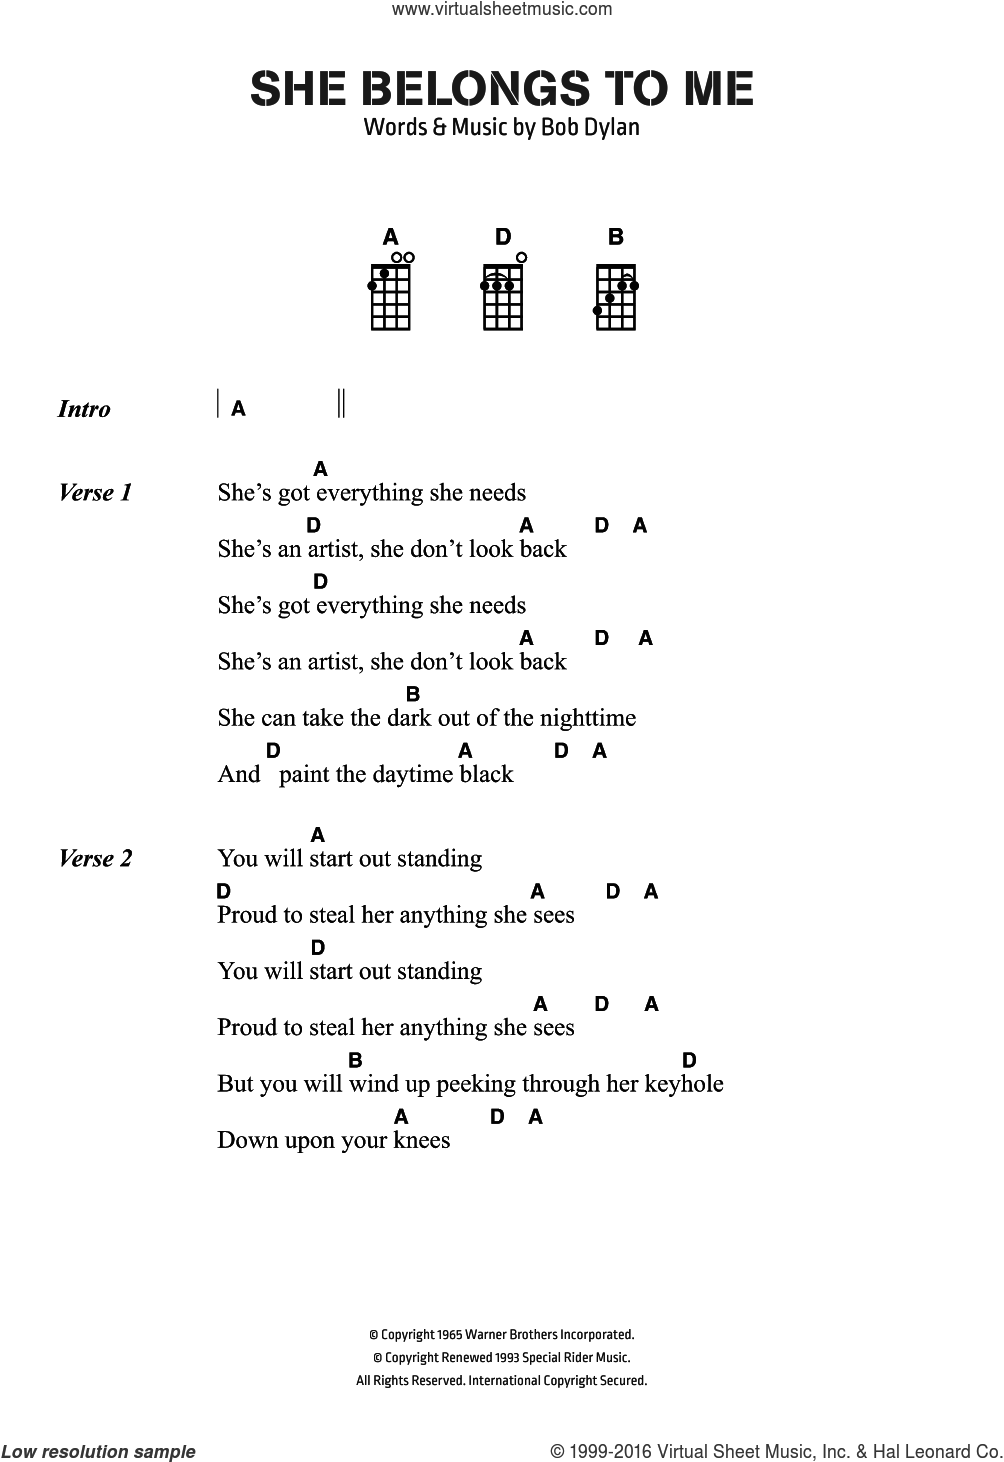 She Belongs To Me sheet music for voice, piano or guitar by Bob Dylan, intermediate